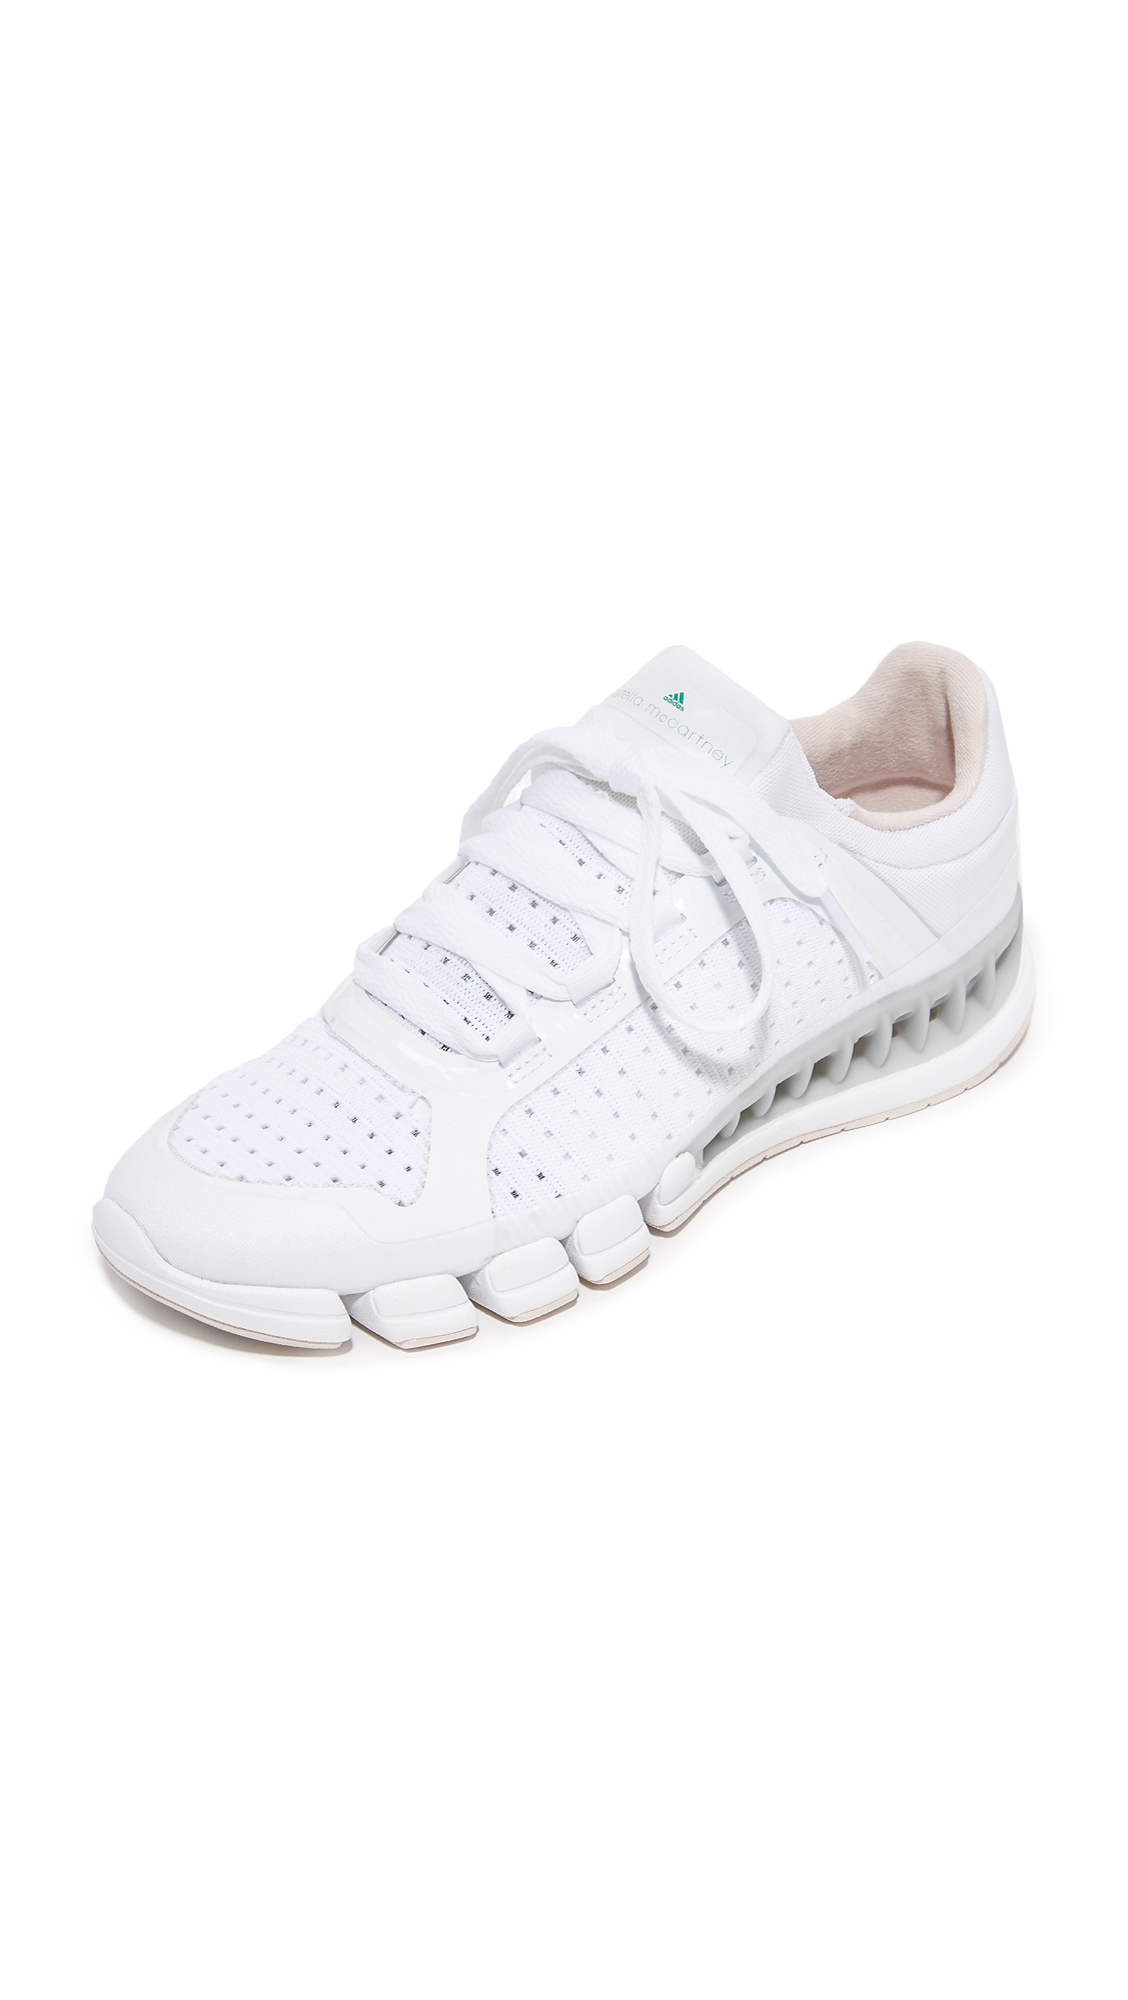 adidas by Stella McCartney Clima Cool Sneakers - White & Black/Echo Pink/Green